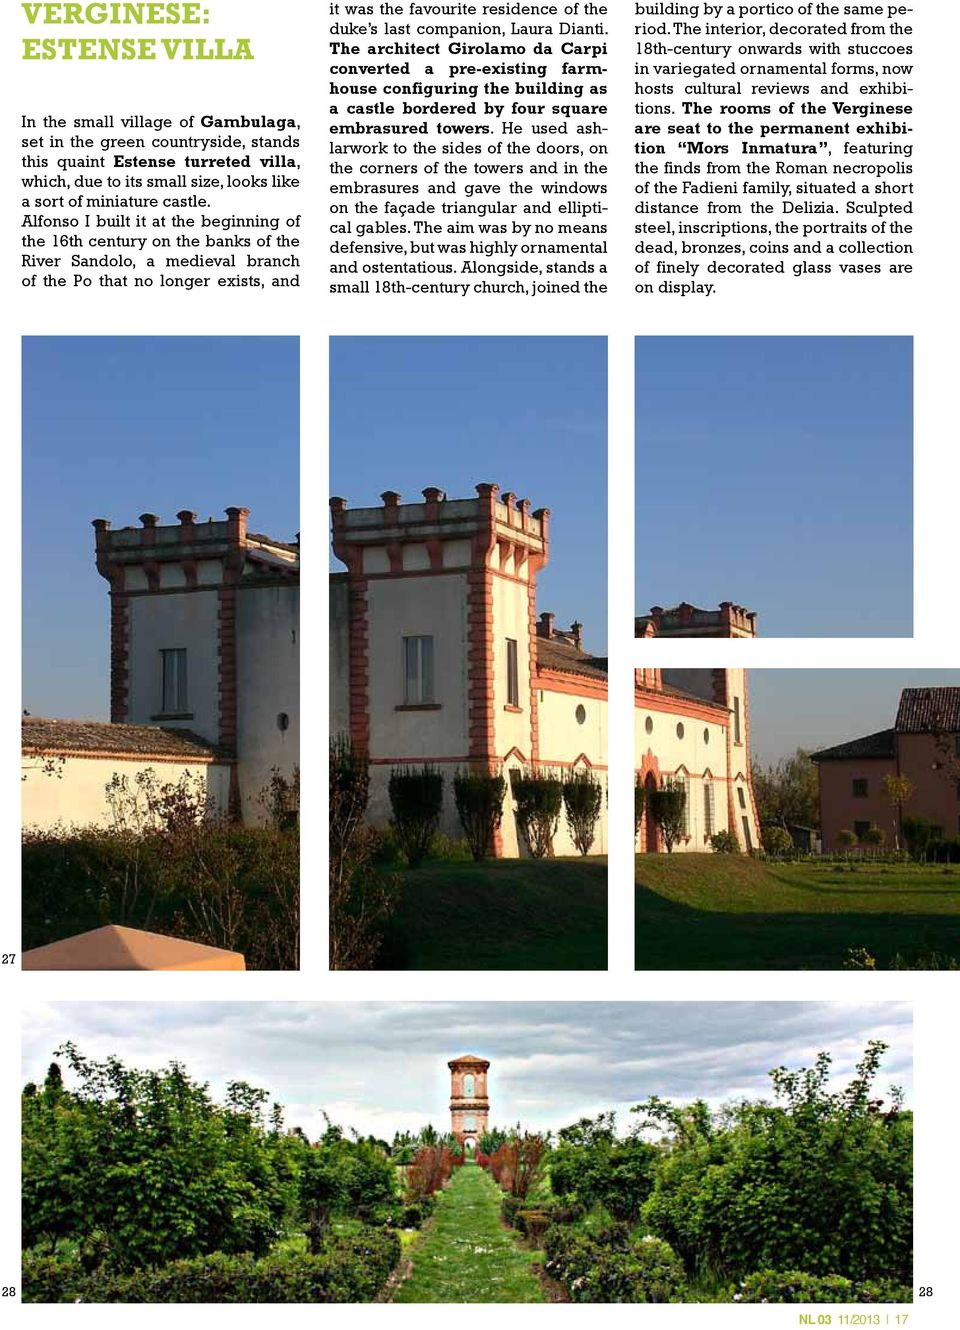 Alfonso I built it at the beginning of the 16th century on the banks of the River Sandolo, a medieval branch of the Po that no longer exists, and it was the favourite residence of the duke s last